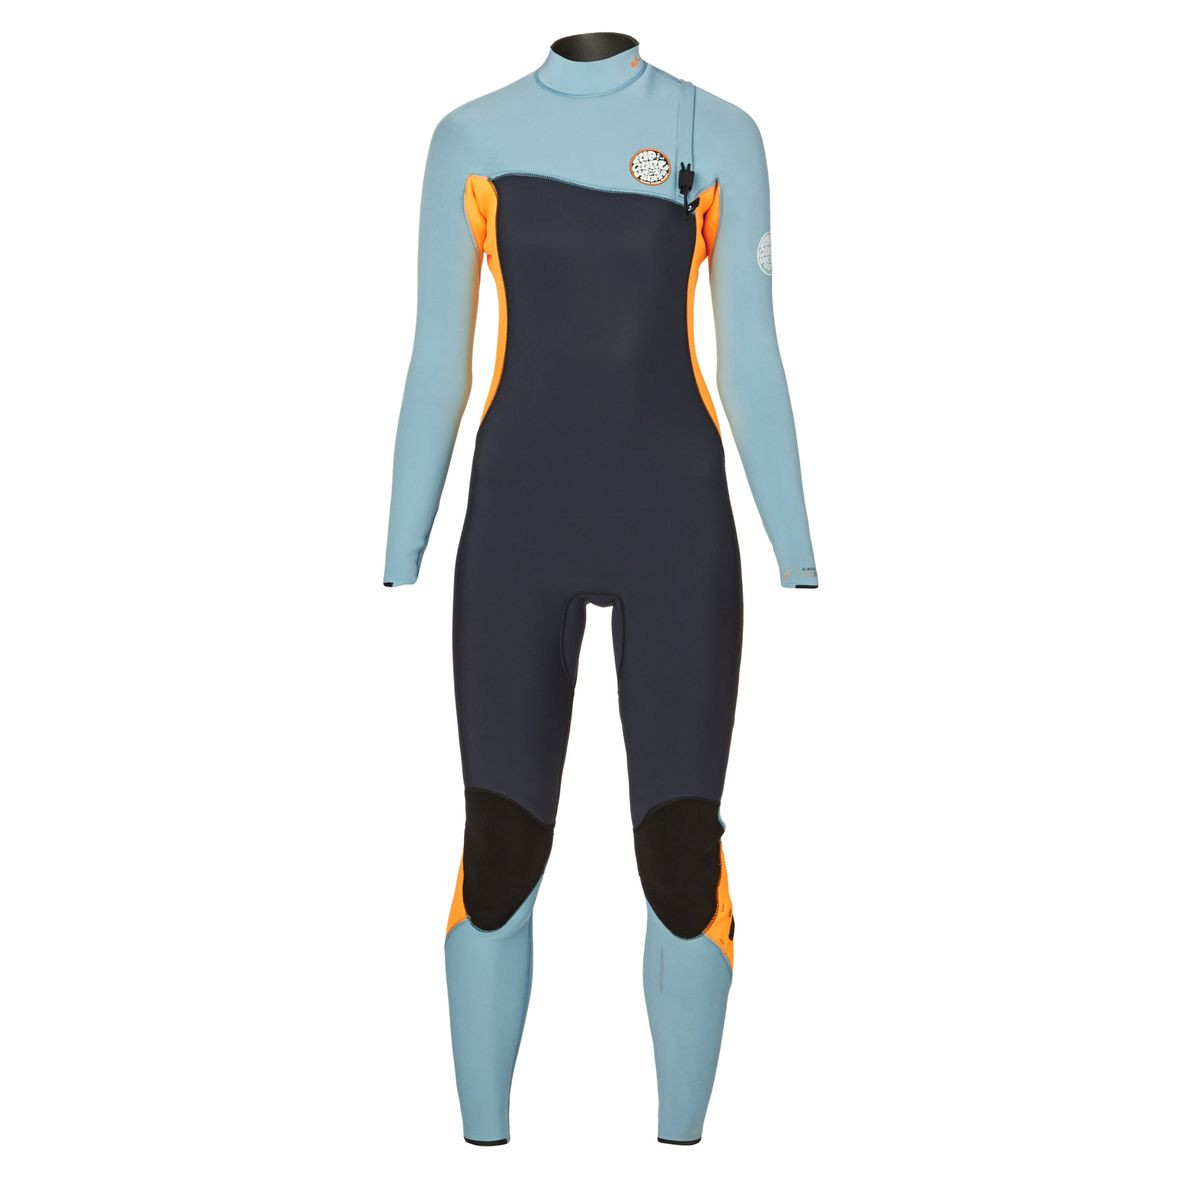 Rip Curl Womens G-Bomb Pro 3/2mm 2017 Zipperless Wetsuit - Slate/ Orange